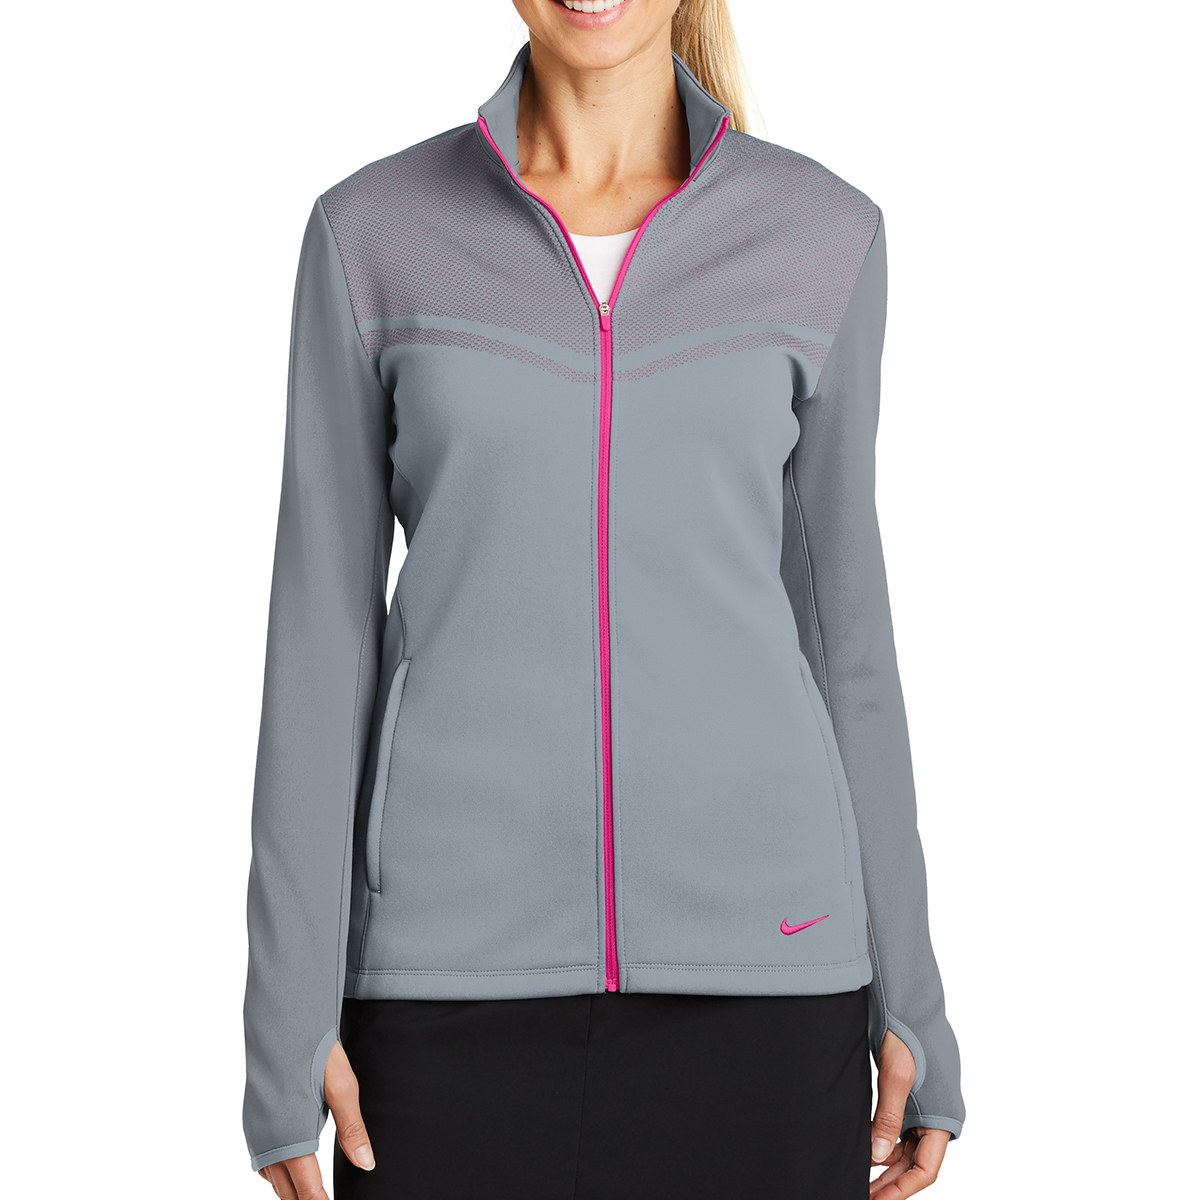 779804 Nike Ladies Therma-FIT Hypervis Full-Zip Jacket - Hit ... 61d955a77